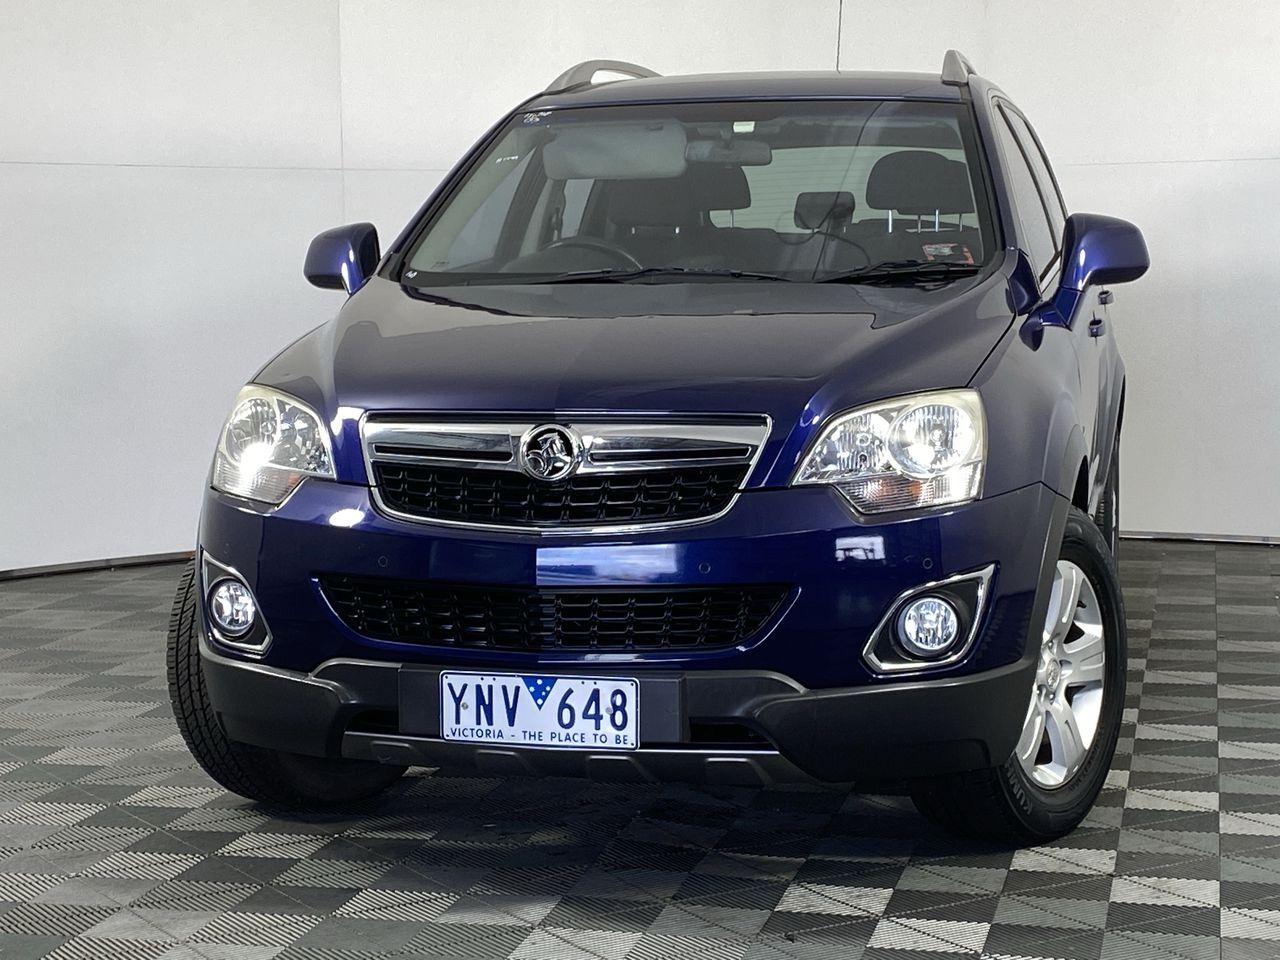 2011 Holden Captiva 5 (FWD) CG II Automatic Wagon